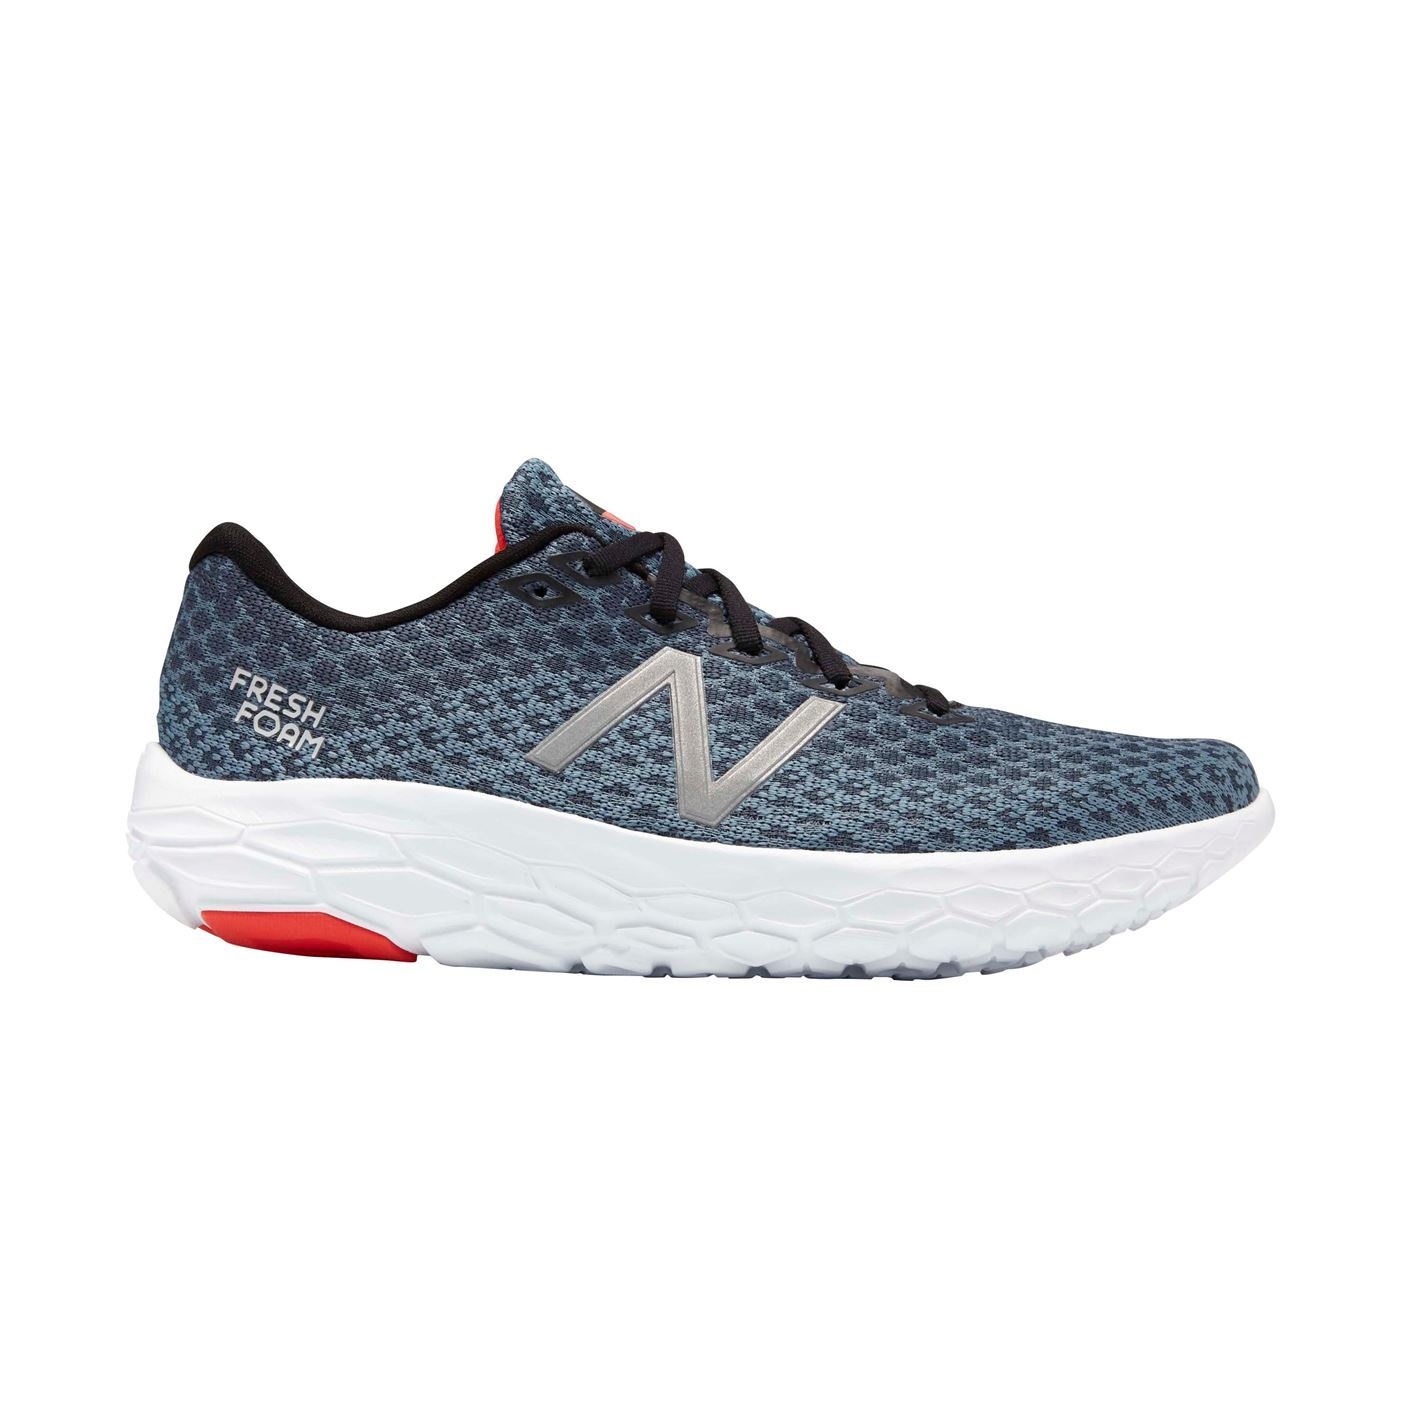 New Balance Shoes Mens Beacon Running Shoes Balance Road Breathable Lightweight Mesh Upper 60e6b0